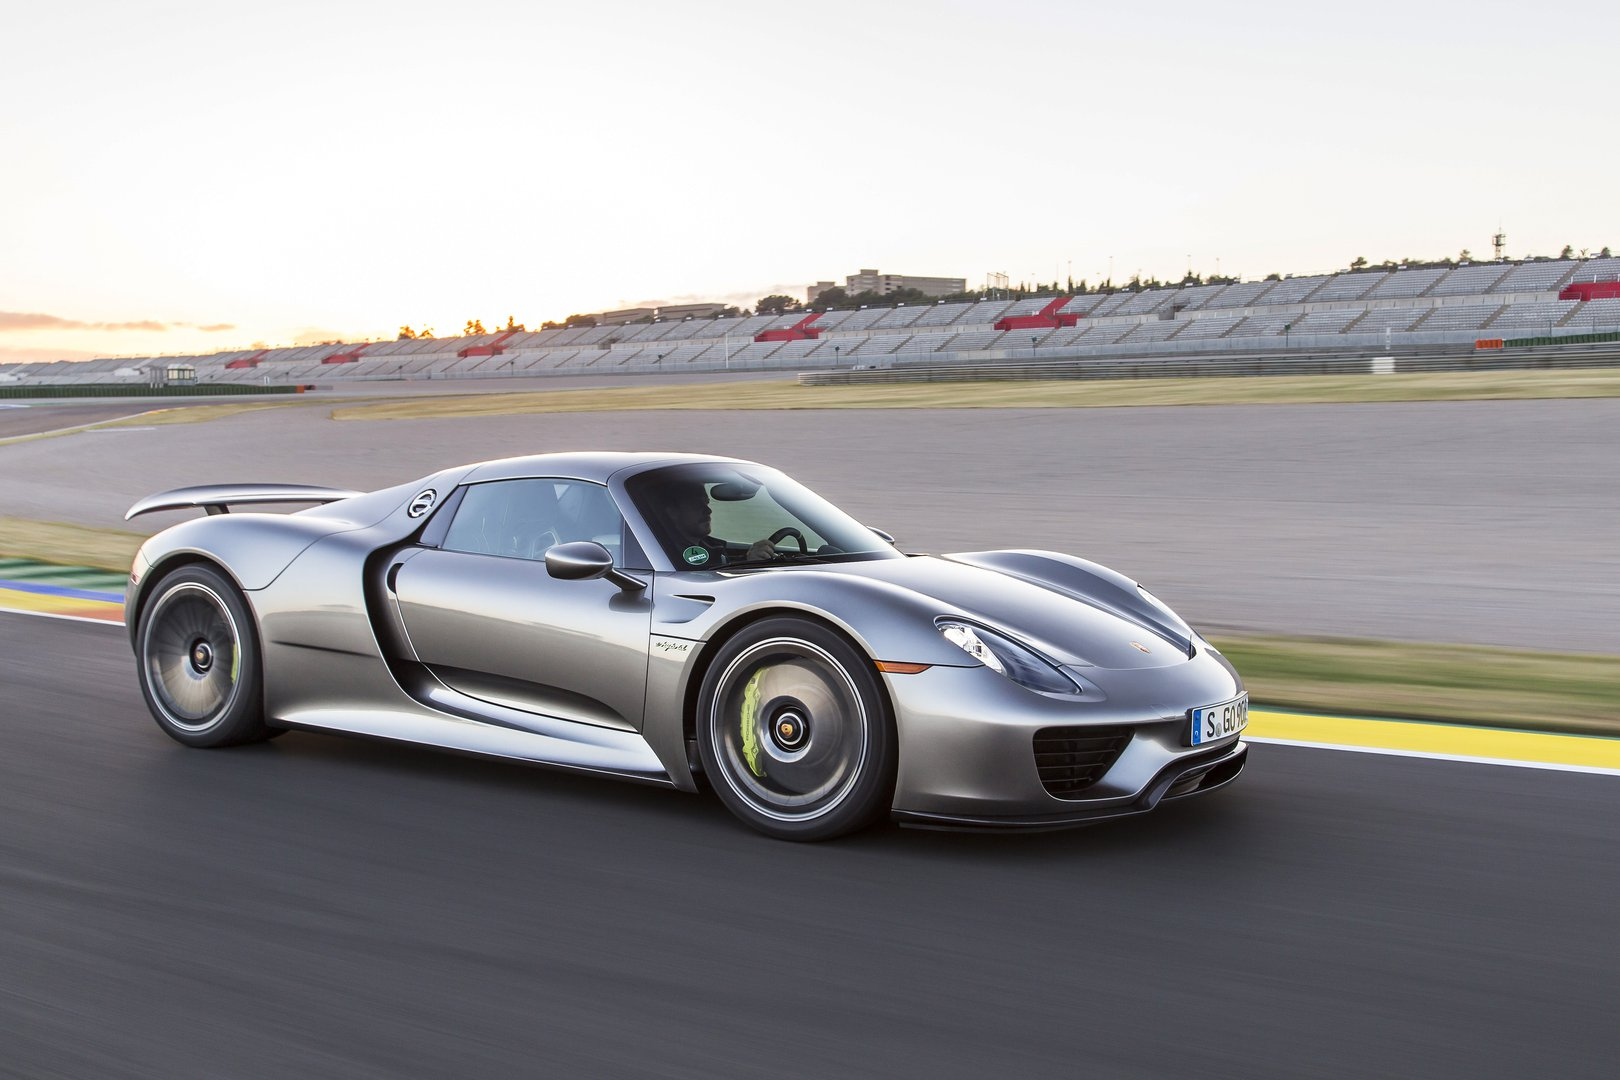 Porsche 918 Spyder V8-Hybrid - EV catalogue - Plugin-magazine.com on porsche speedster, porsche gt3, porsche convertible, porsche coupe, porsche macan, lamborghini gallardo spyder, porsche women, james dean porsche spyder, porsche 550 spyder, porsche spyder wallpaper, 1955 porsche spyder, porsche cayenne,